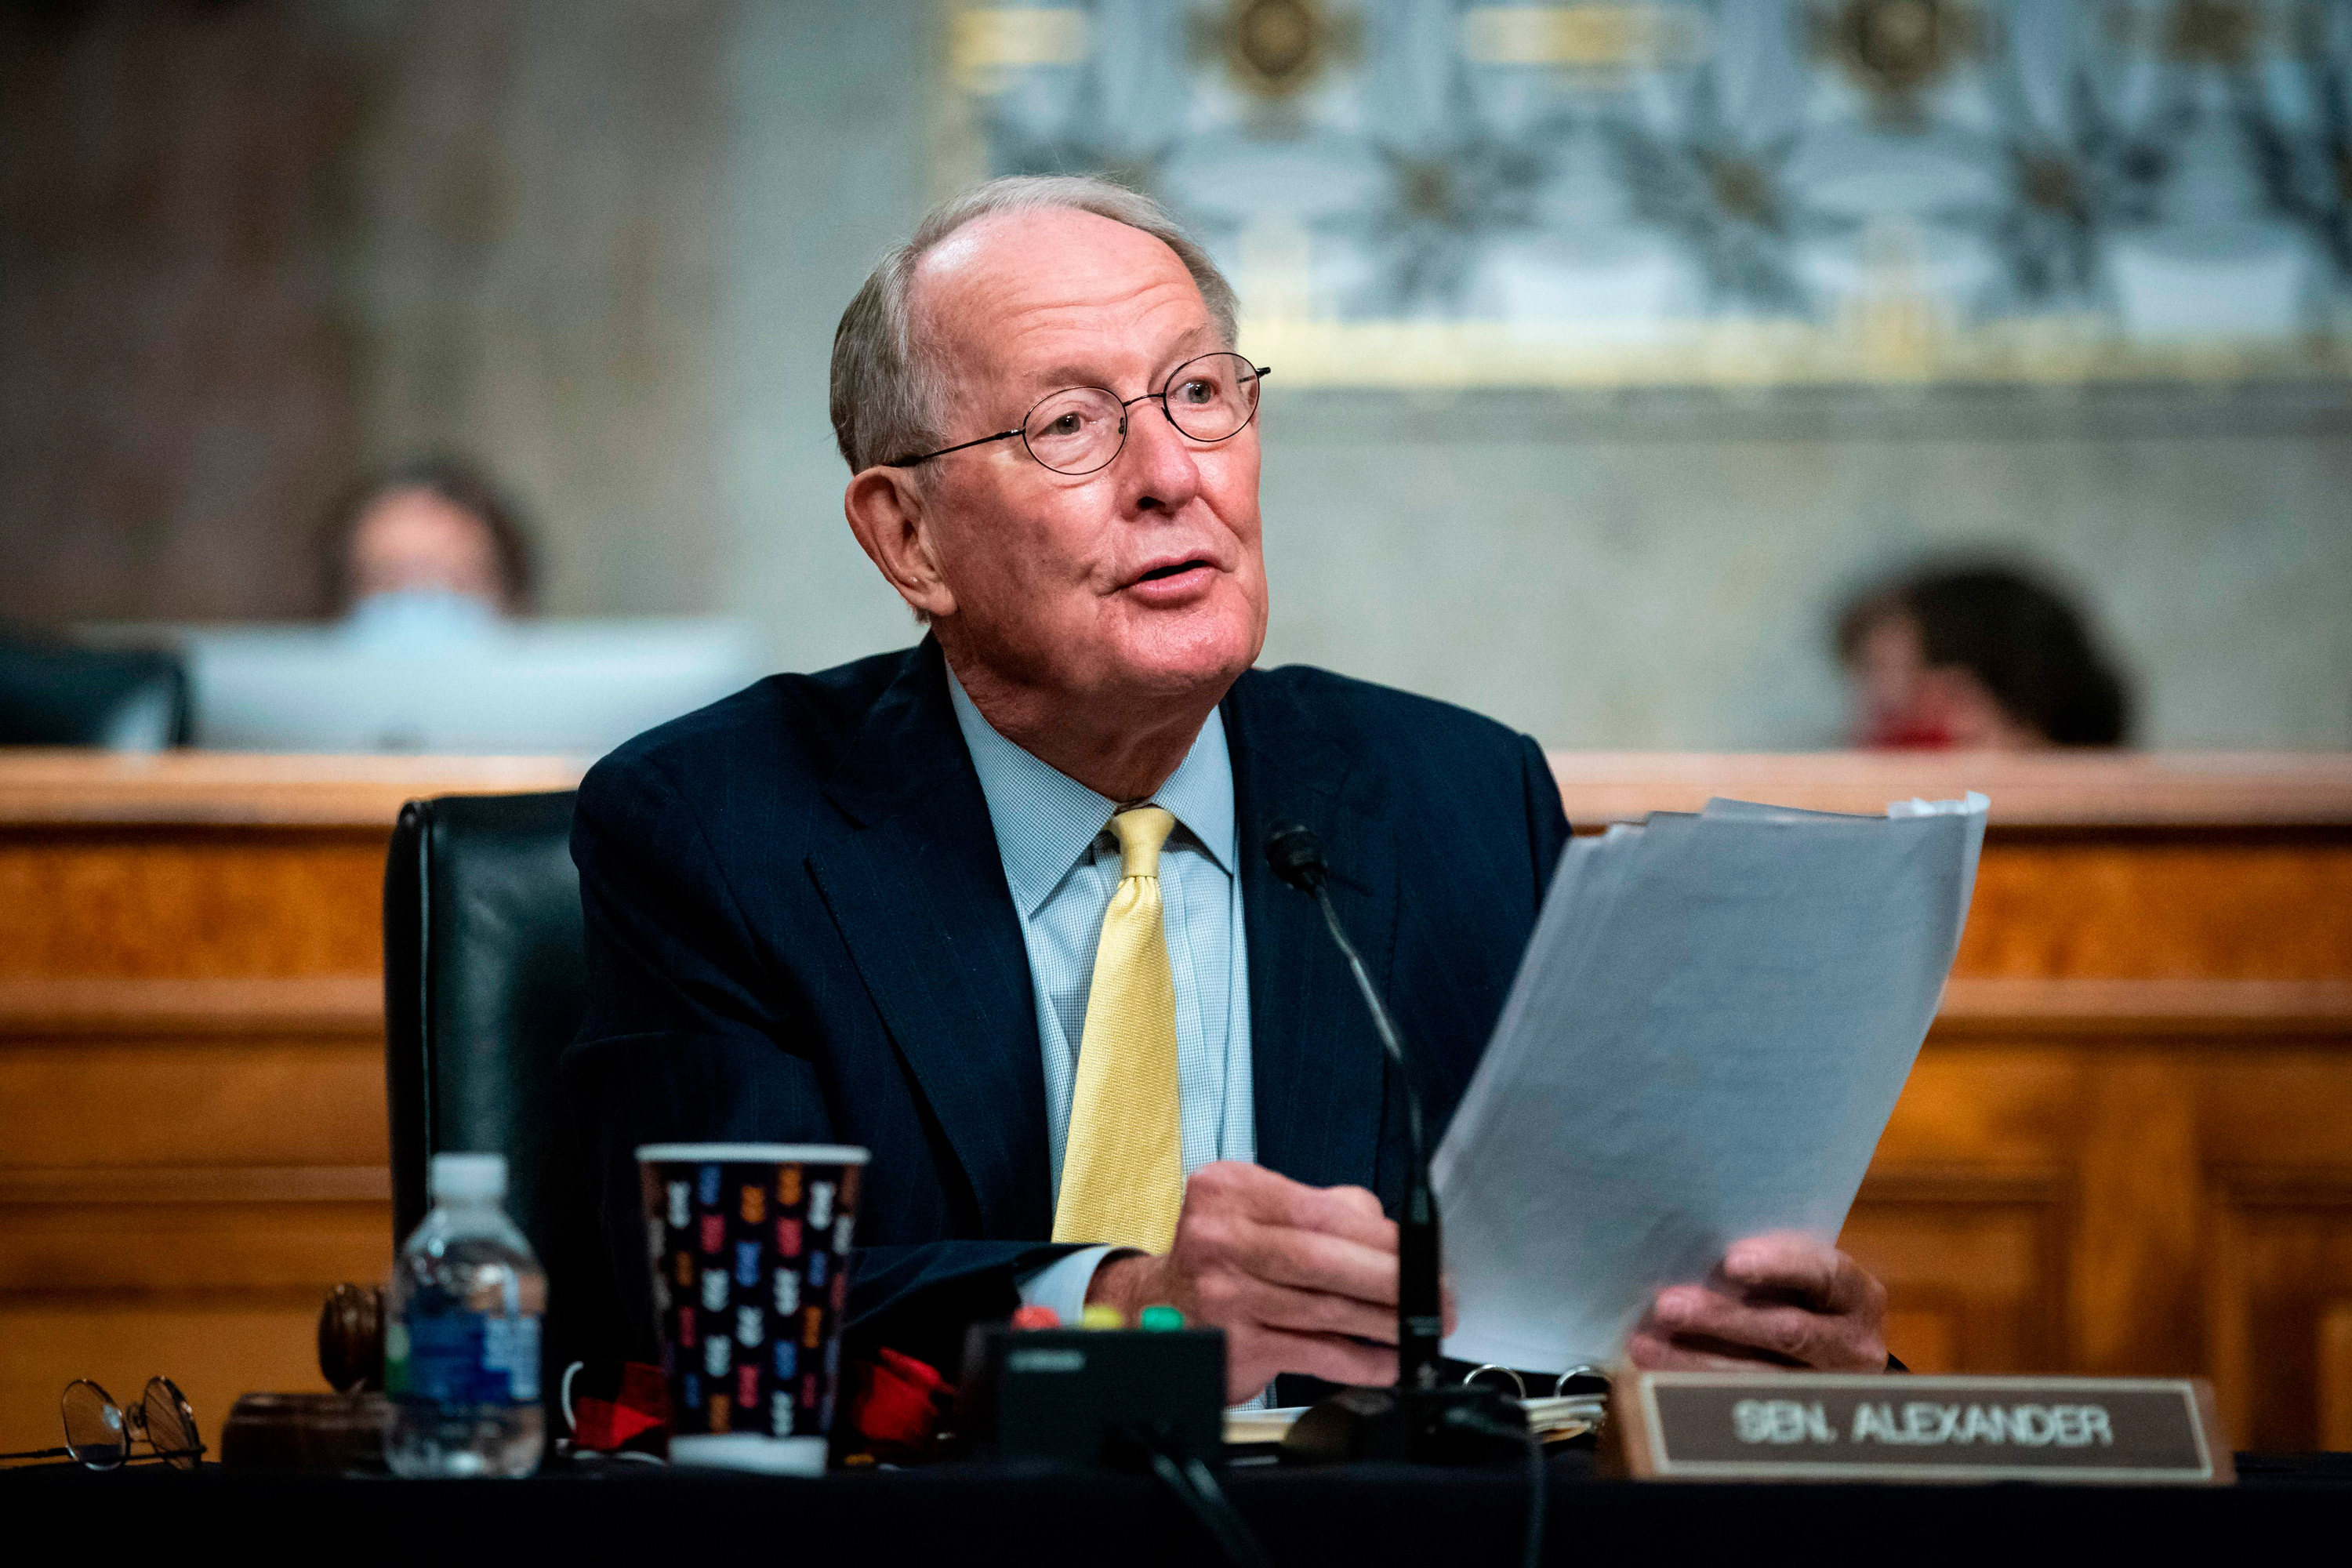 Senator Lamar Alexander, a chairman of the Senate Health Education Labor and Pensions Committee, speaks during a hearing on the US response to the coronavirus pandemic on Capitol Hill in Washington, DC, on June 30.